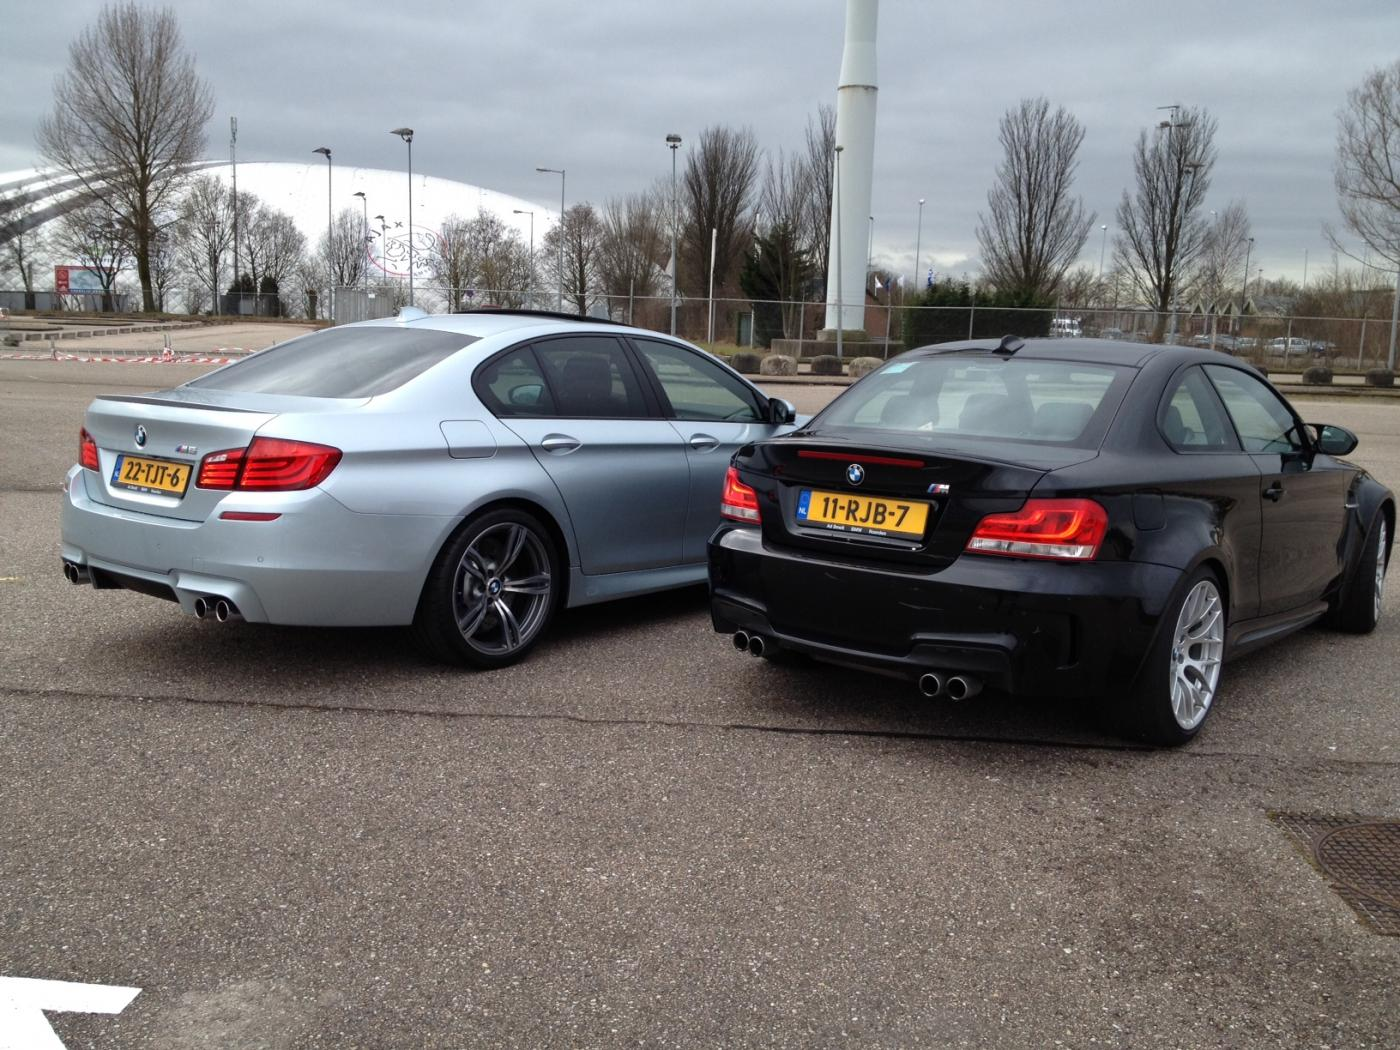 Savarona s delivered silverstone ii m5 from http f10 m5post com forums showthread php t 649575